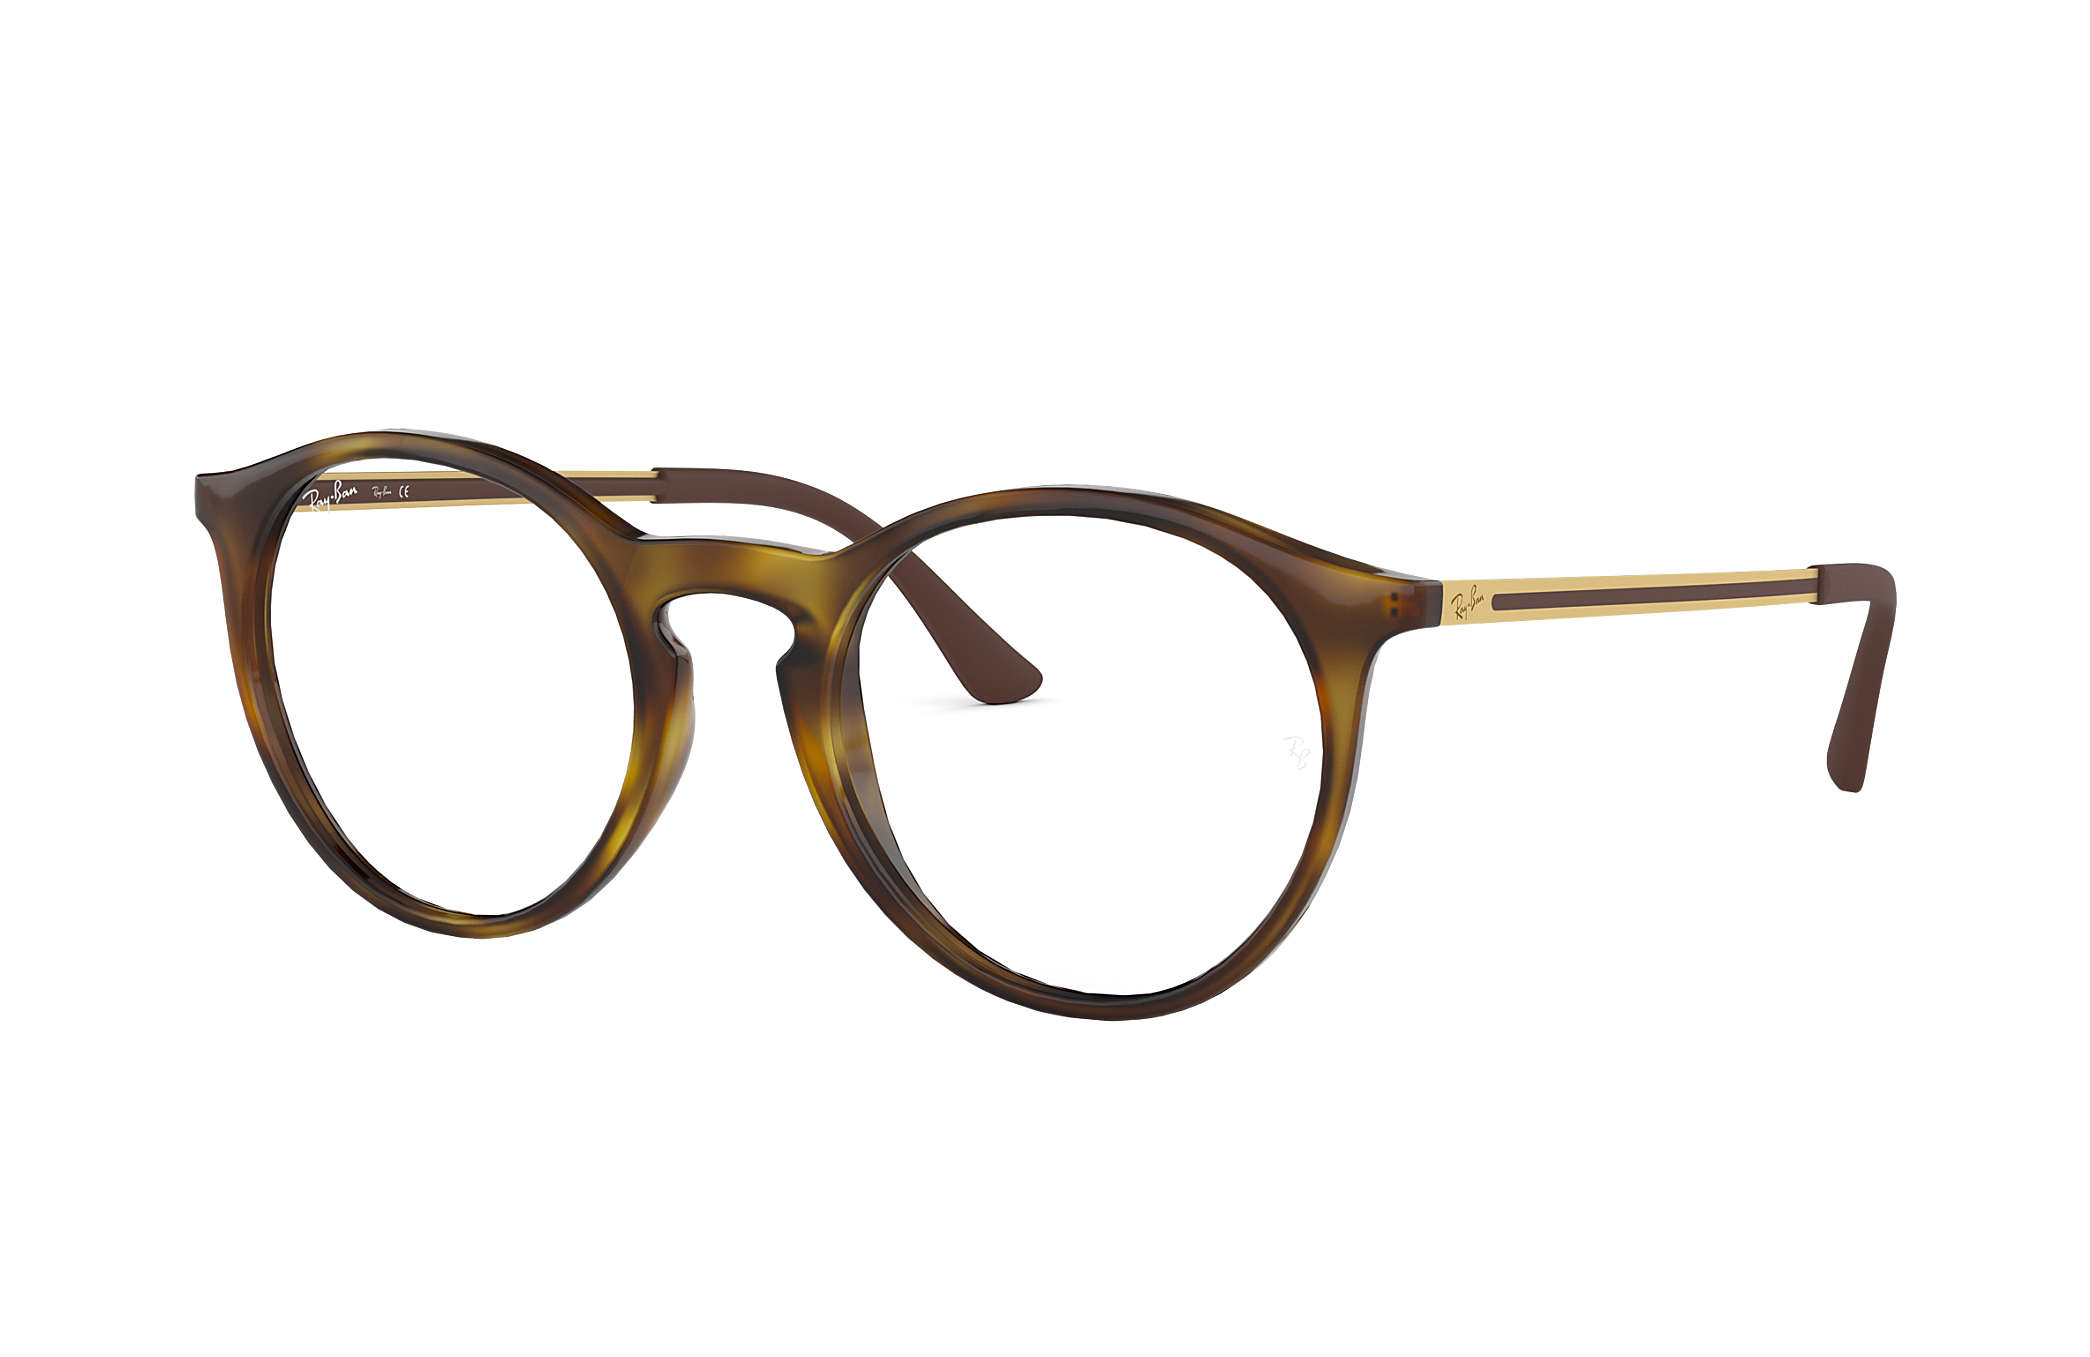 08a71f50c30 Ray-Ban eyeglasses RB7132F Tortoise - Injected - 0RX7132F201252 ...